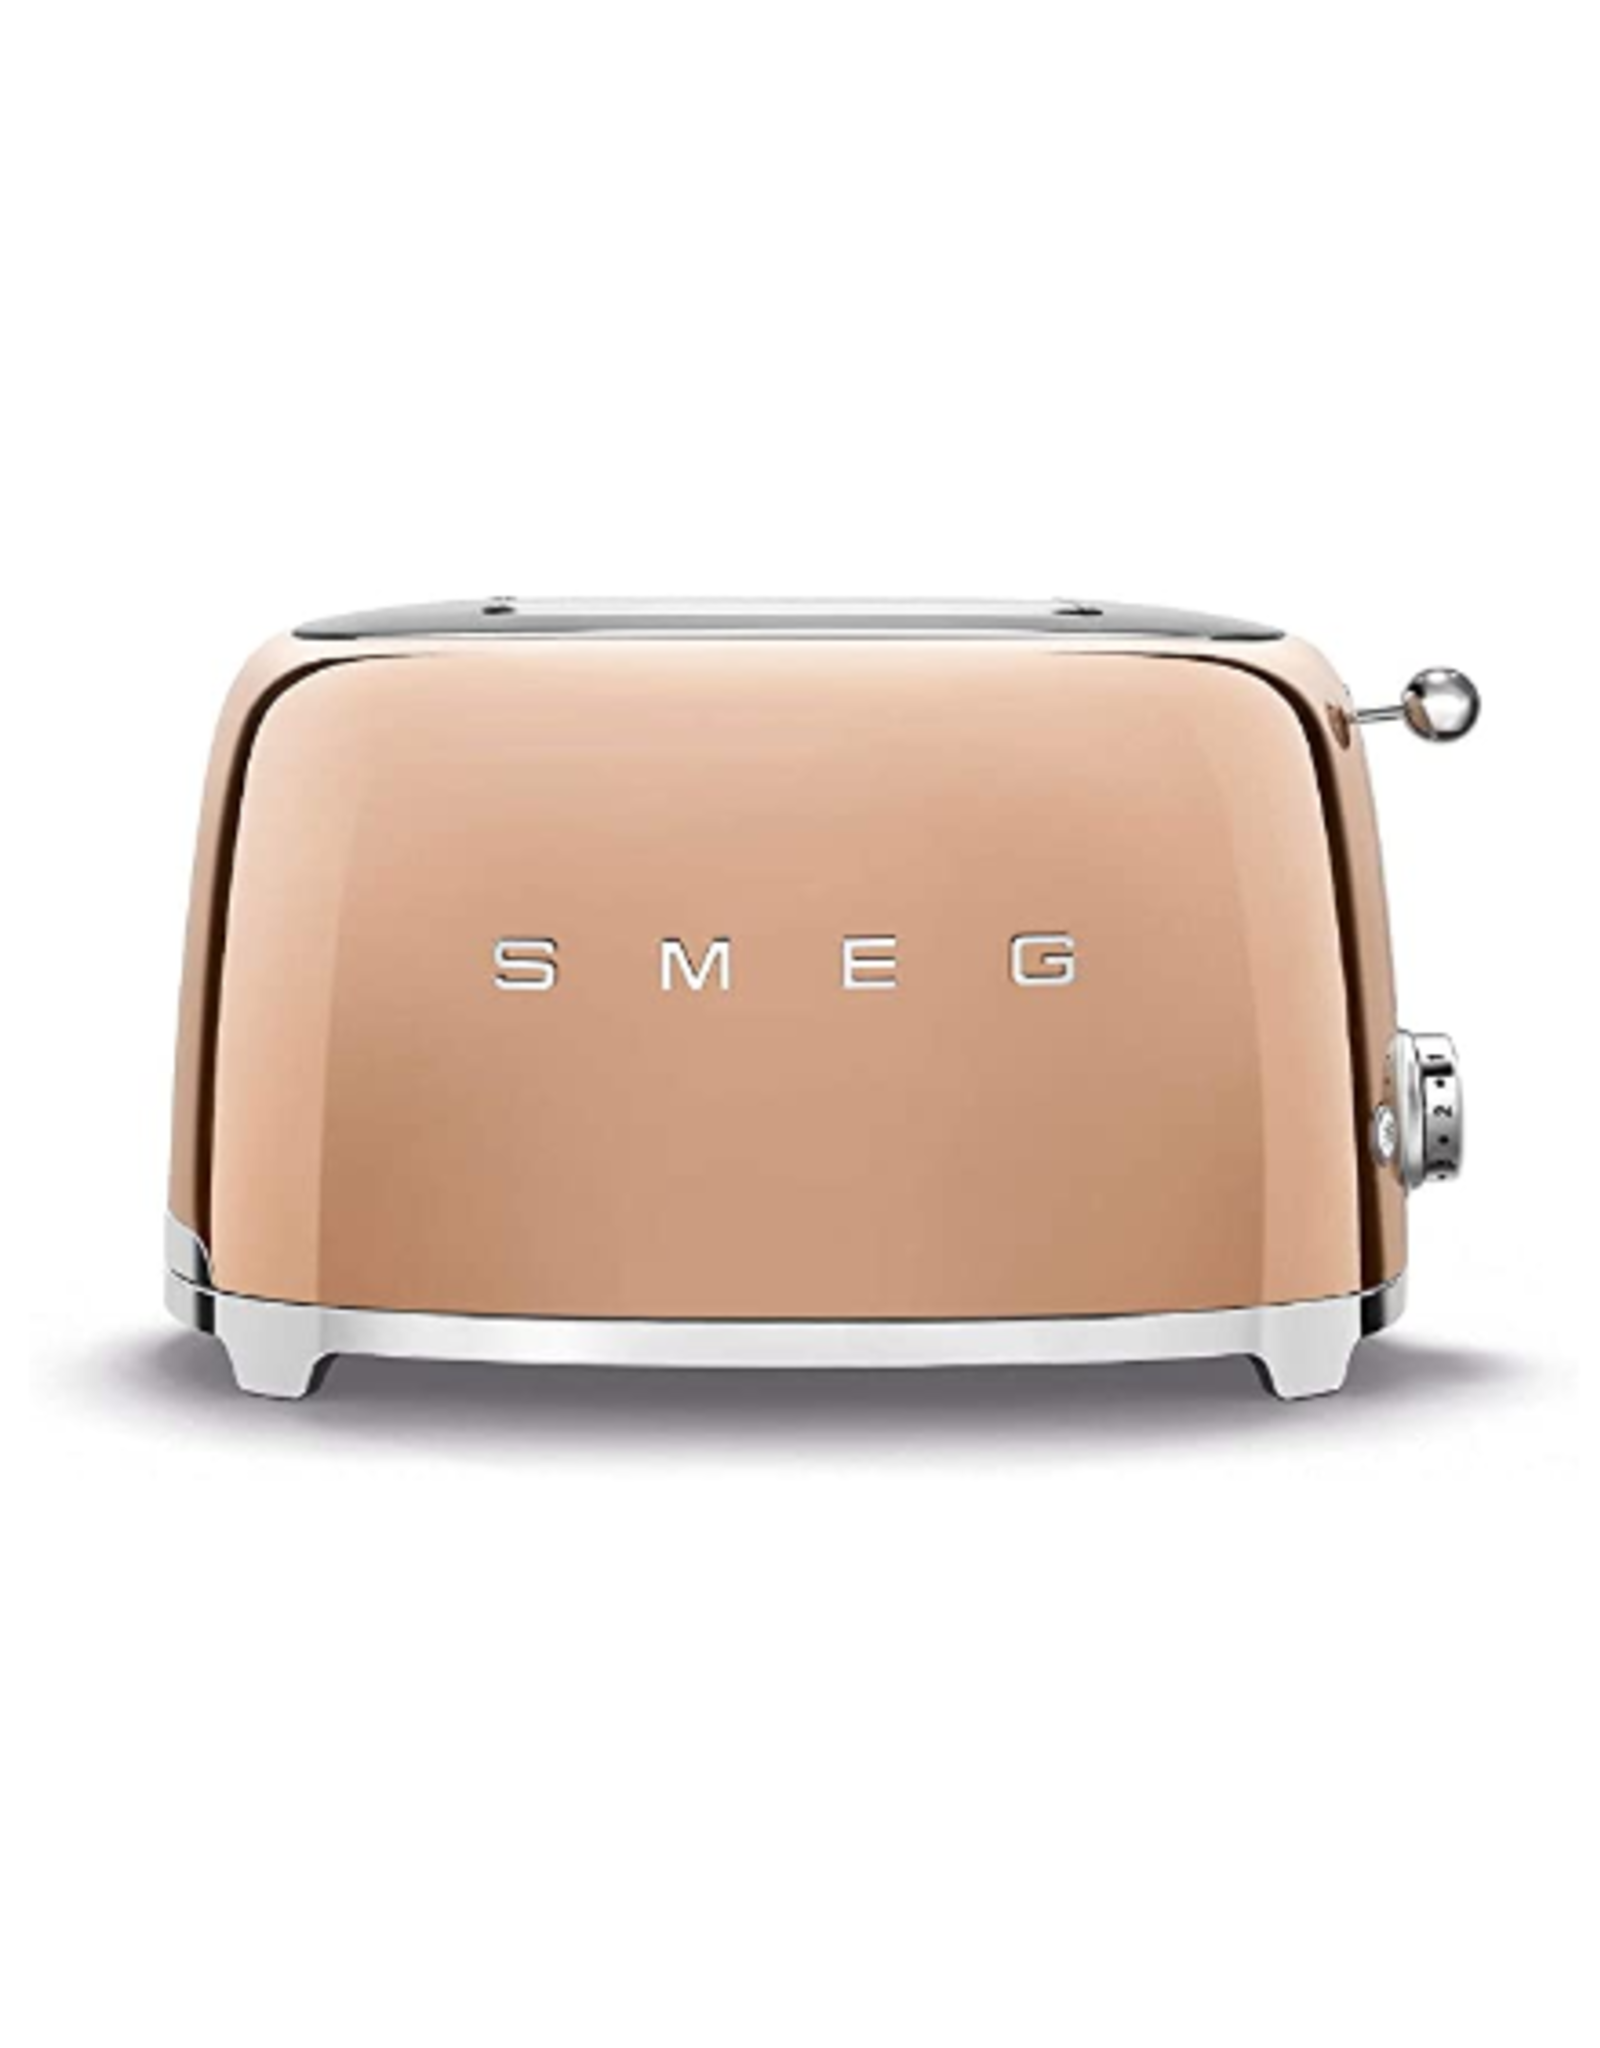 Smeg 2 Slice Toaster, Rose Gold